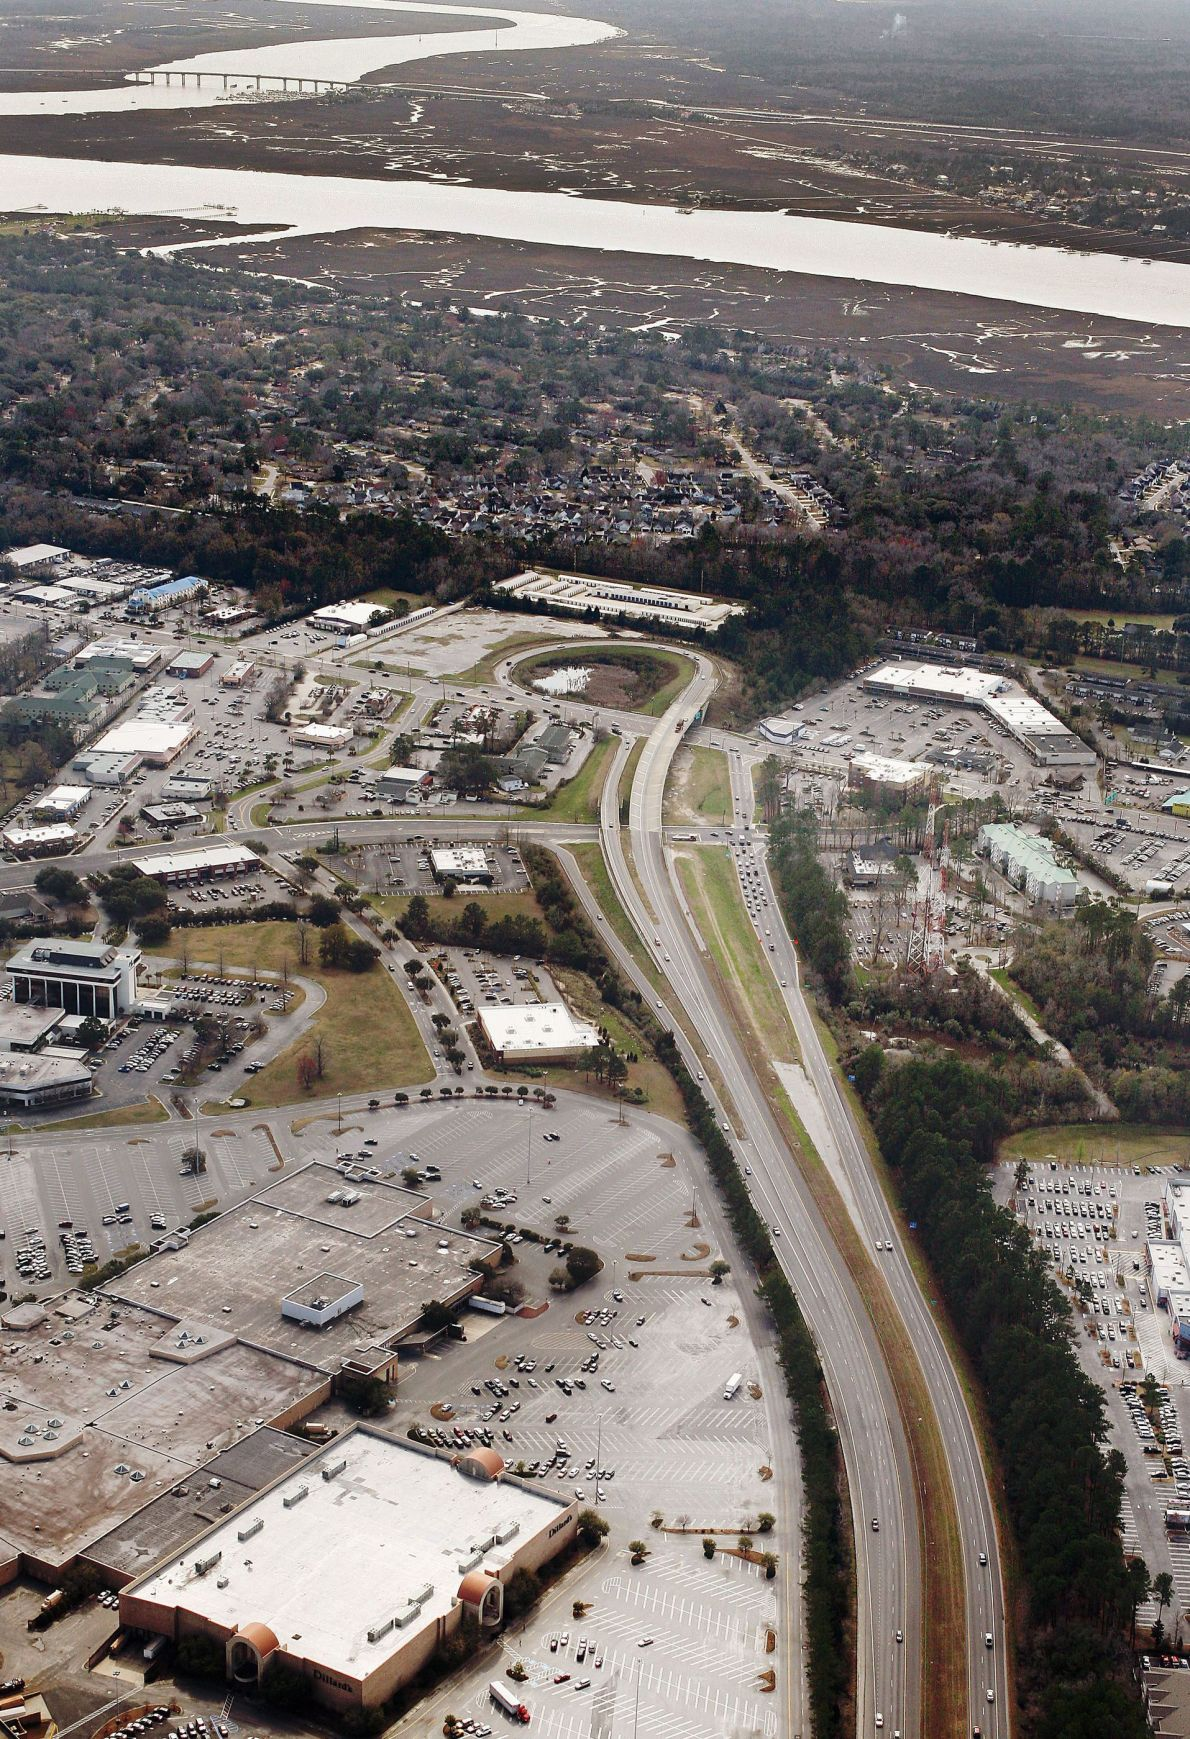 State Infrastructure Bank will consider extending time to negotiate I-526